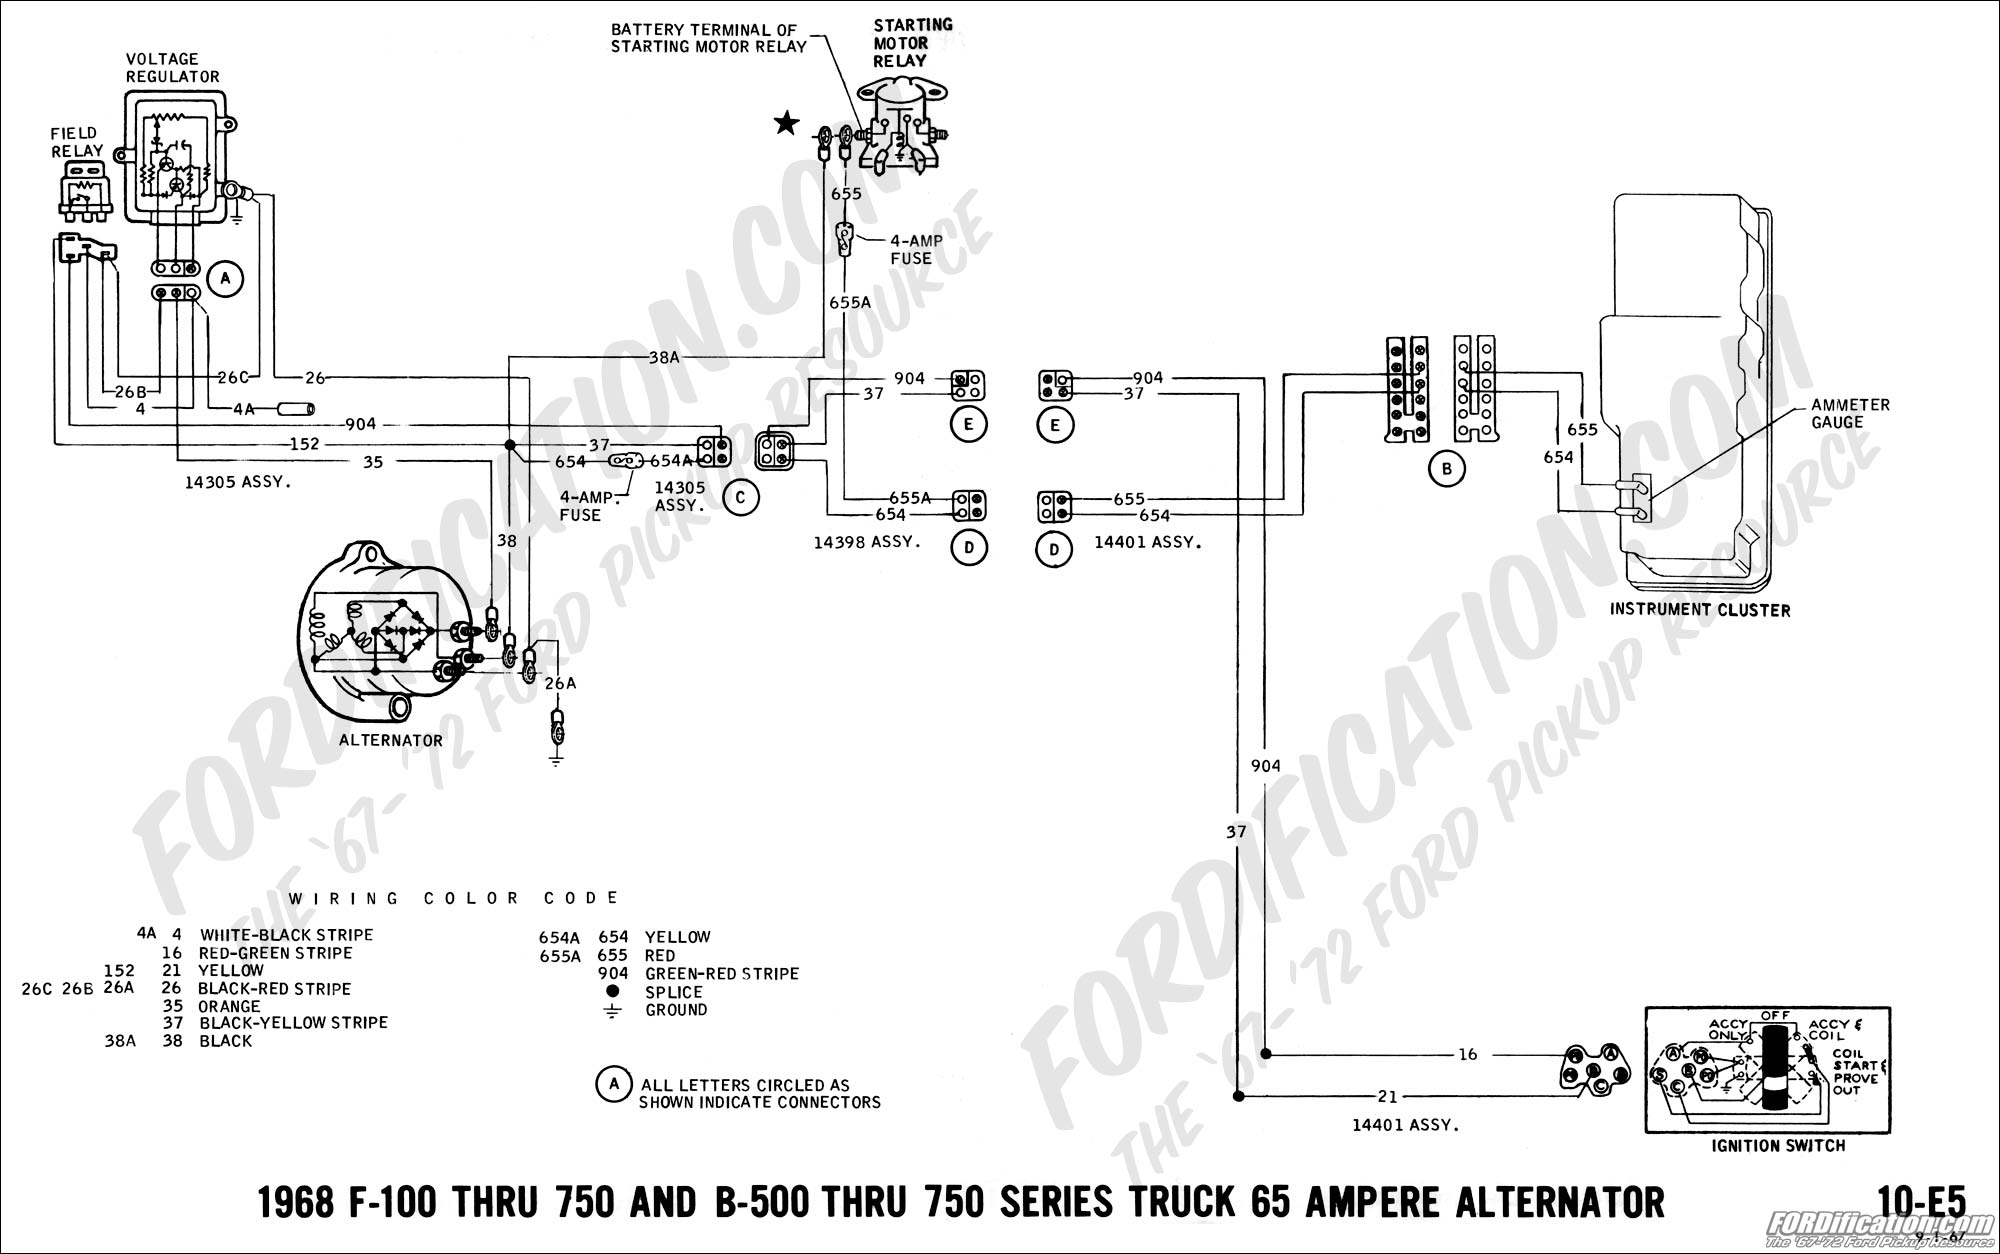 Gm Turn Signal Wiring Diagram 1985 Auto Electrical 1957 Jeep 3 Wire 1983 Chevy Truck Ford Technical Drawings And Schematics